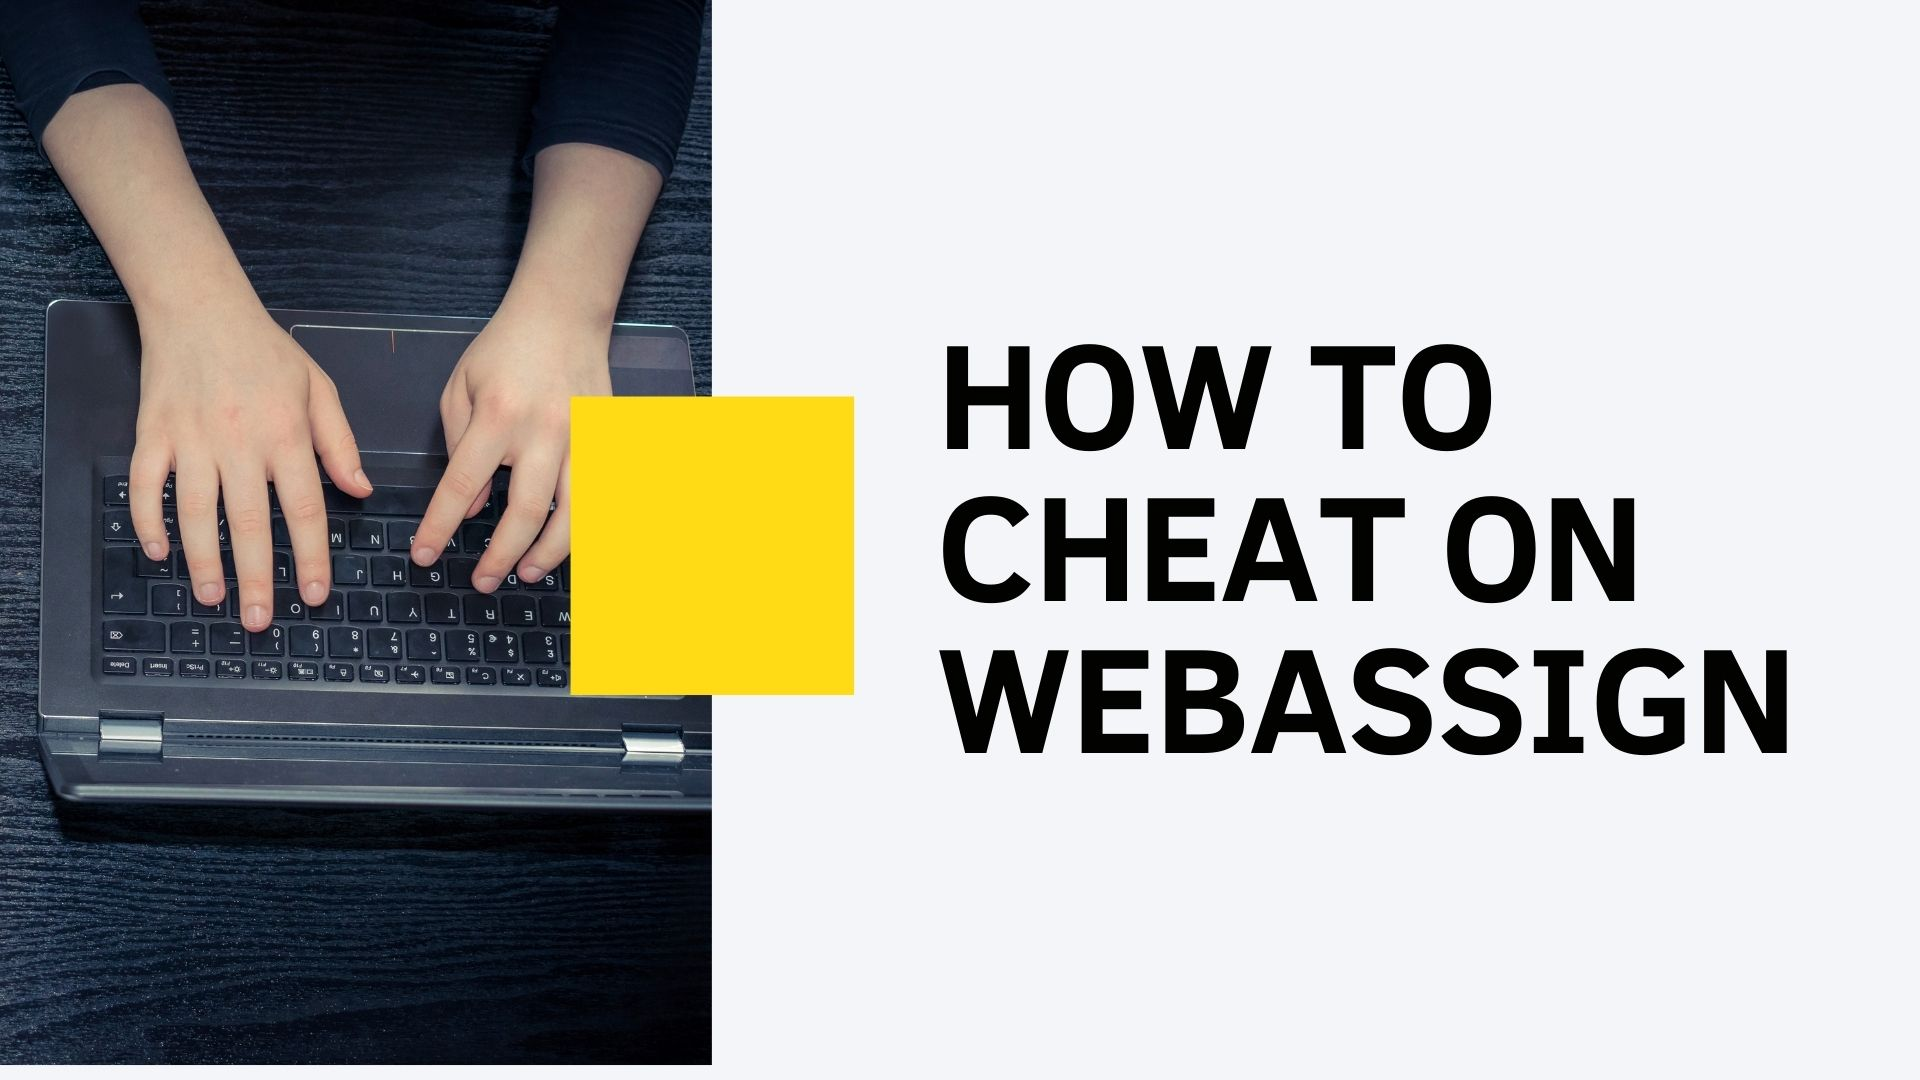 how to cheat webassign